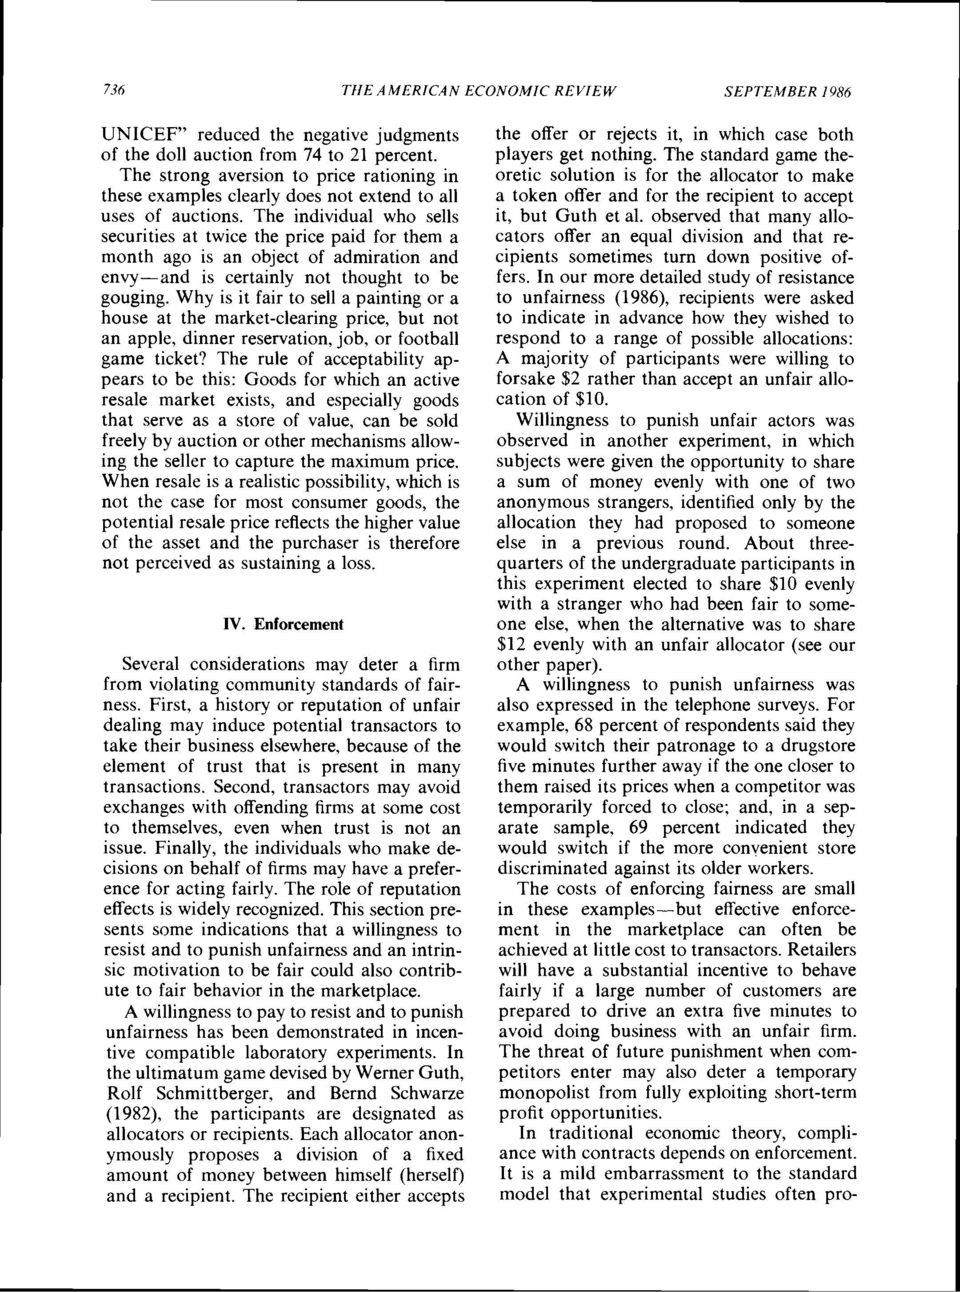 The individual who sells securities at twice the price paid for them a month ago is an object of admiration and envy-and is certainly not thought to be gouging.